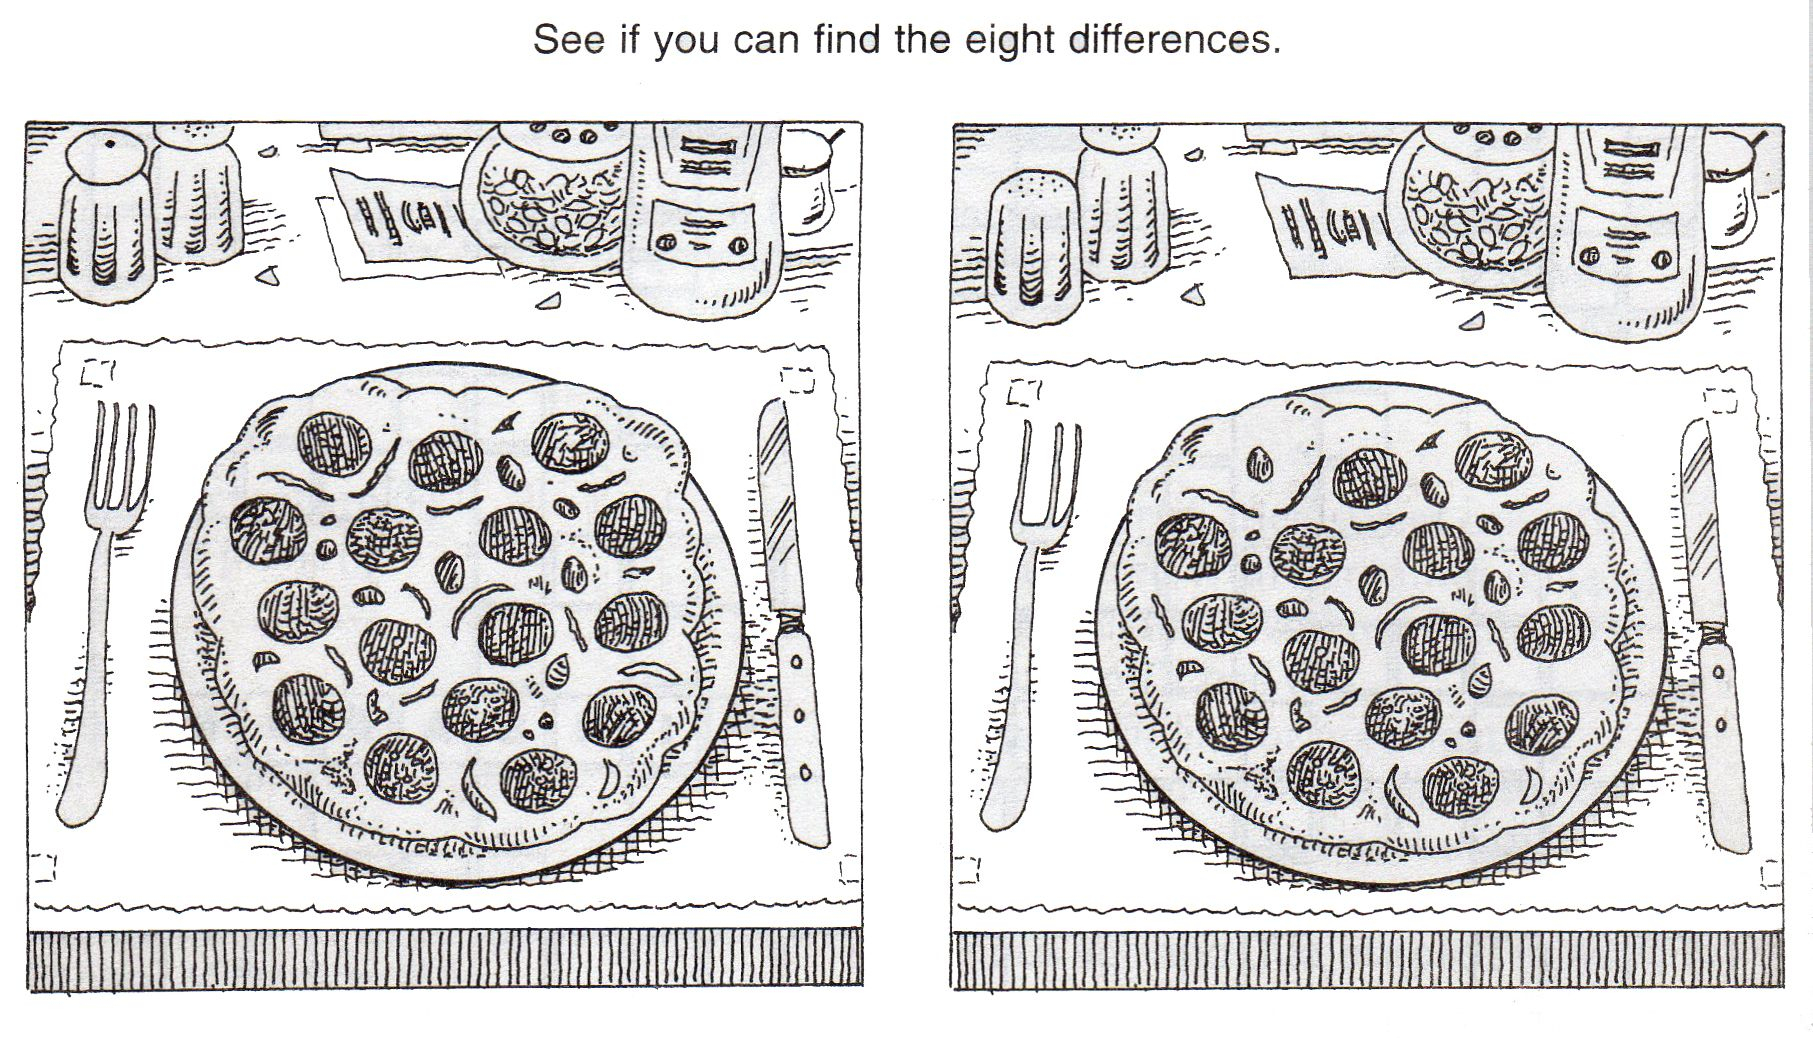 Free+Printable+Spot+The+Difference+Puzzles   Hg   Pinterest   Spot - Free Printable Spot The Difference Worksheets